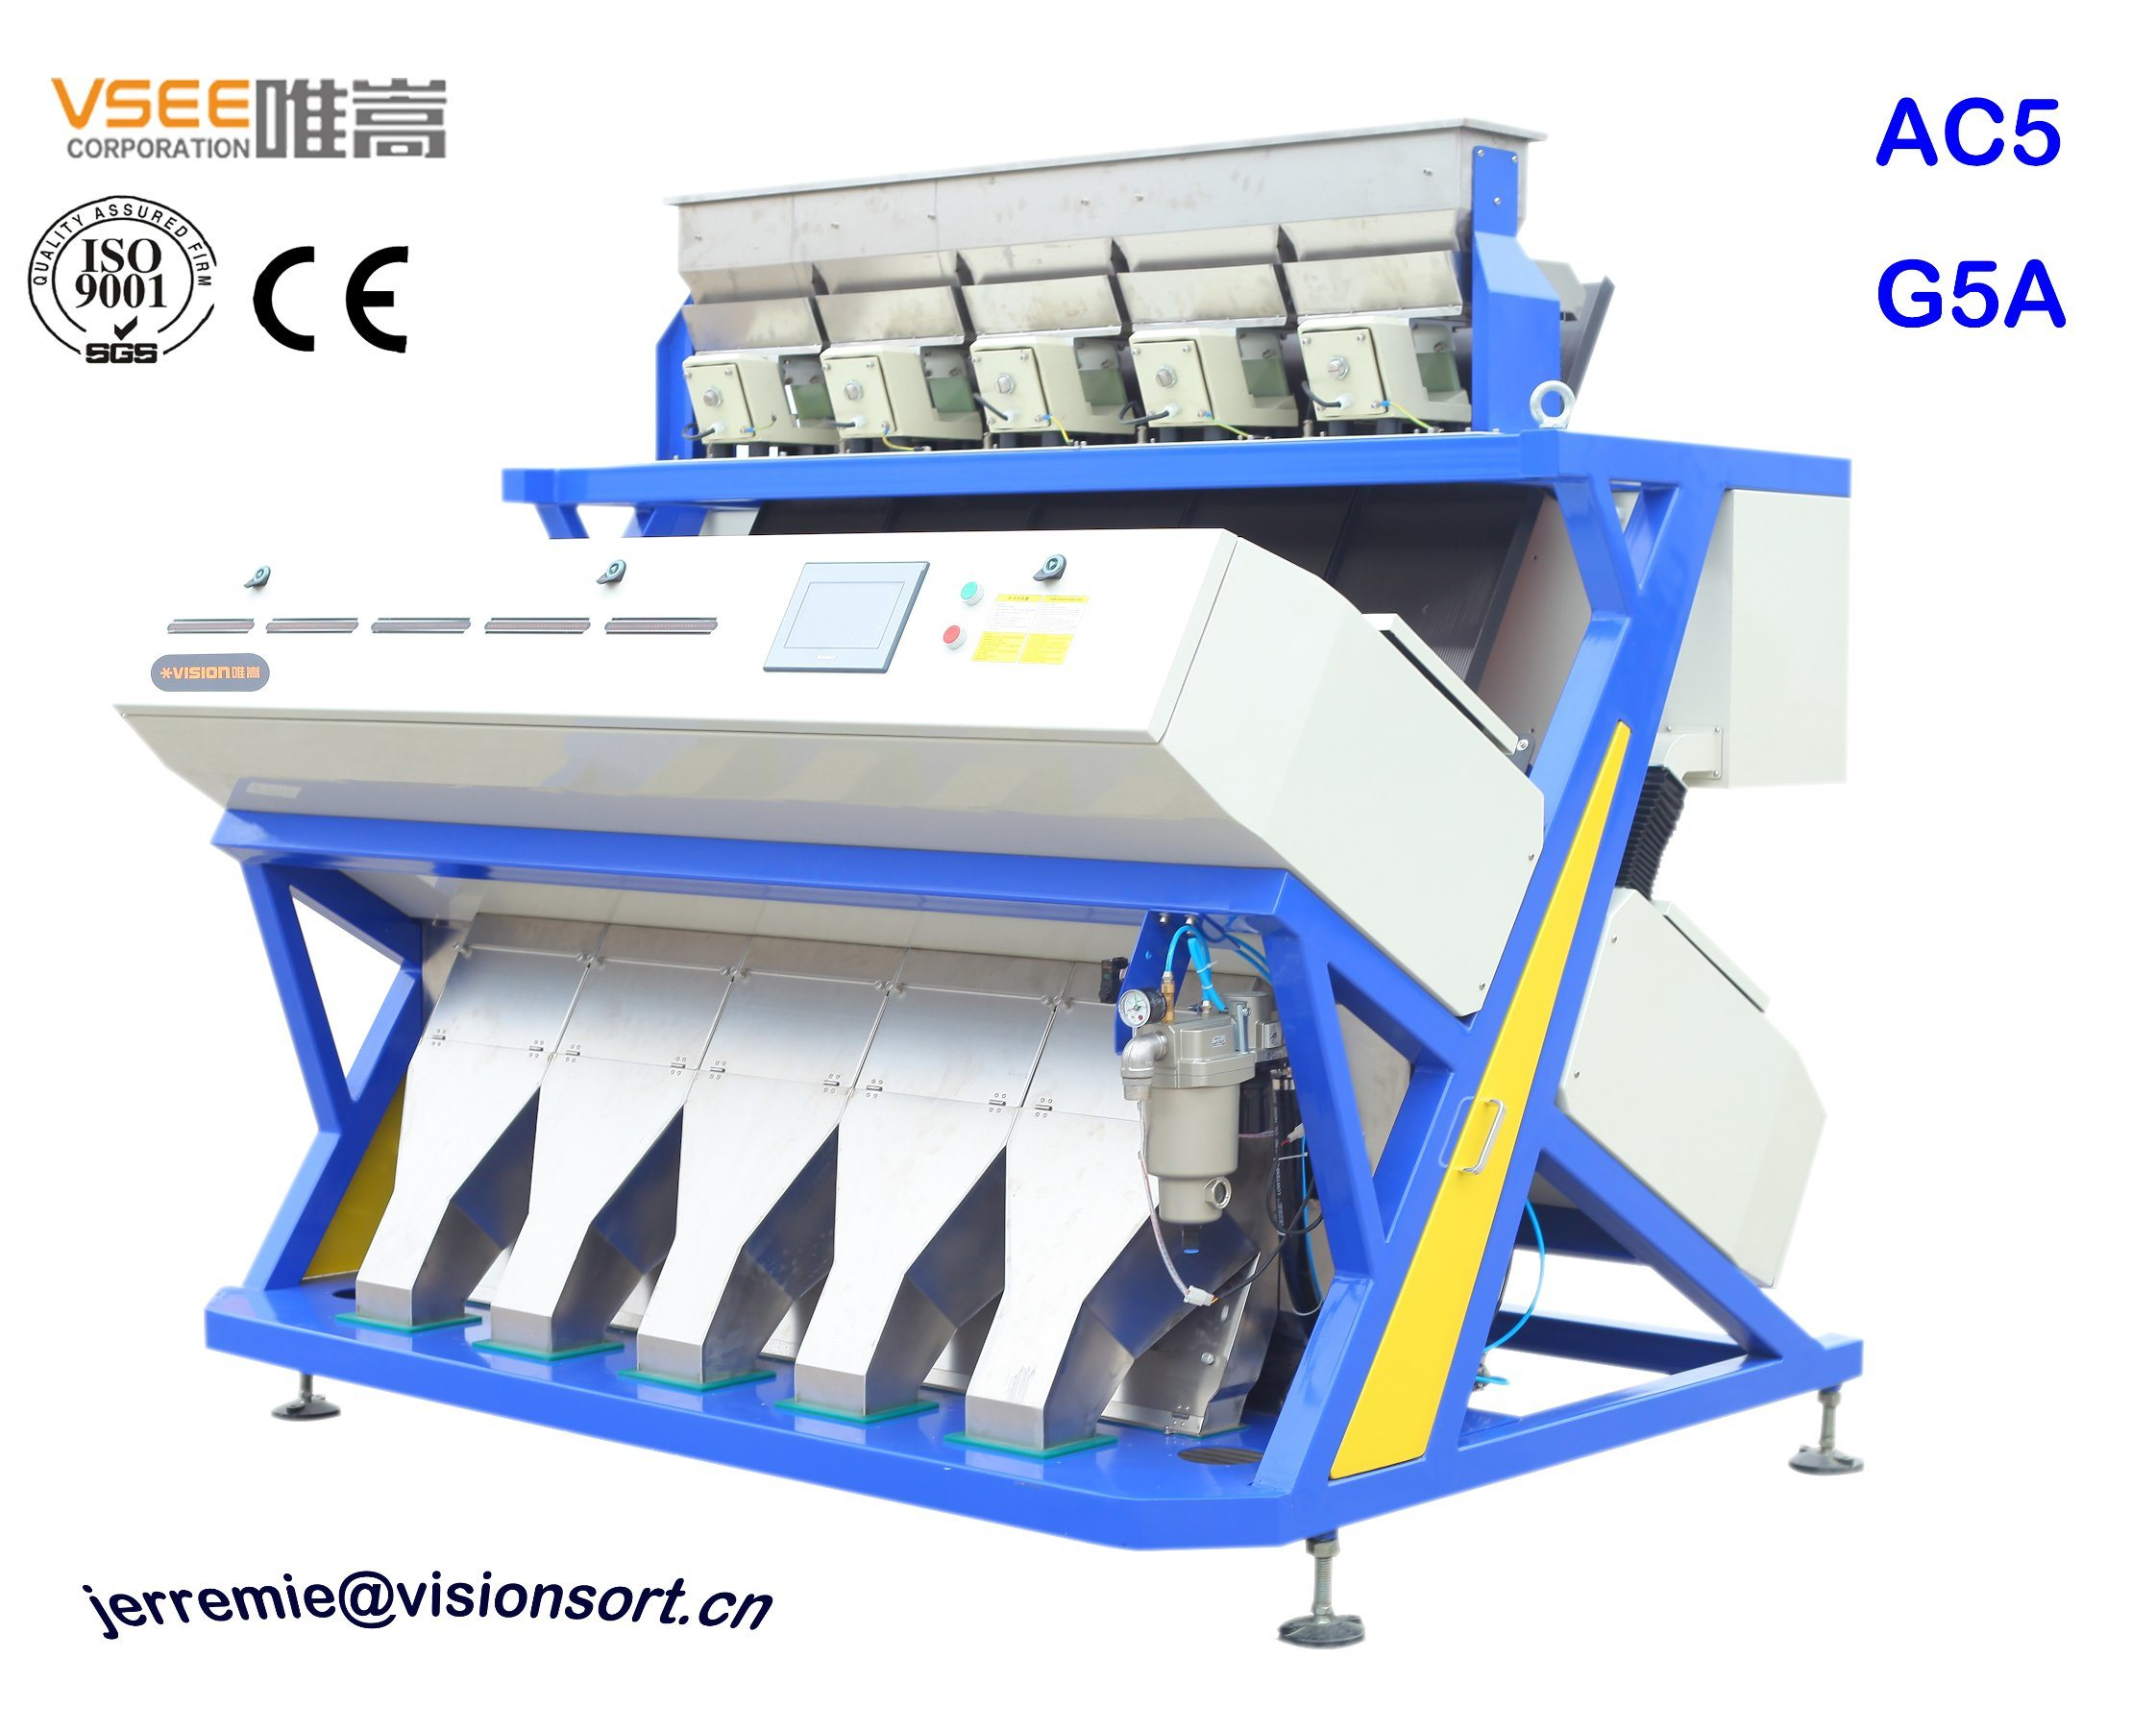 [Hot Item] Filipino Best Seller Corn Processing Machinery From China Vsee  Color Sorter